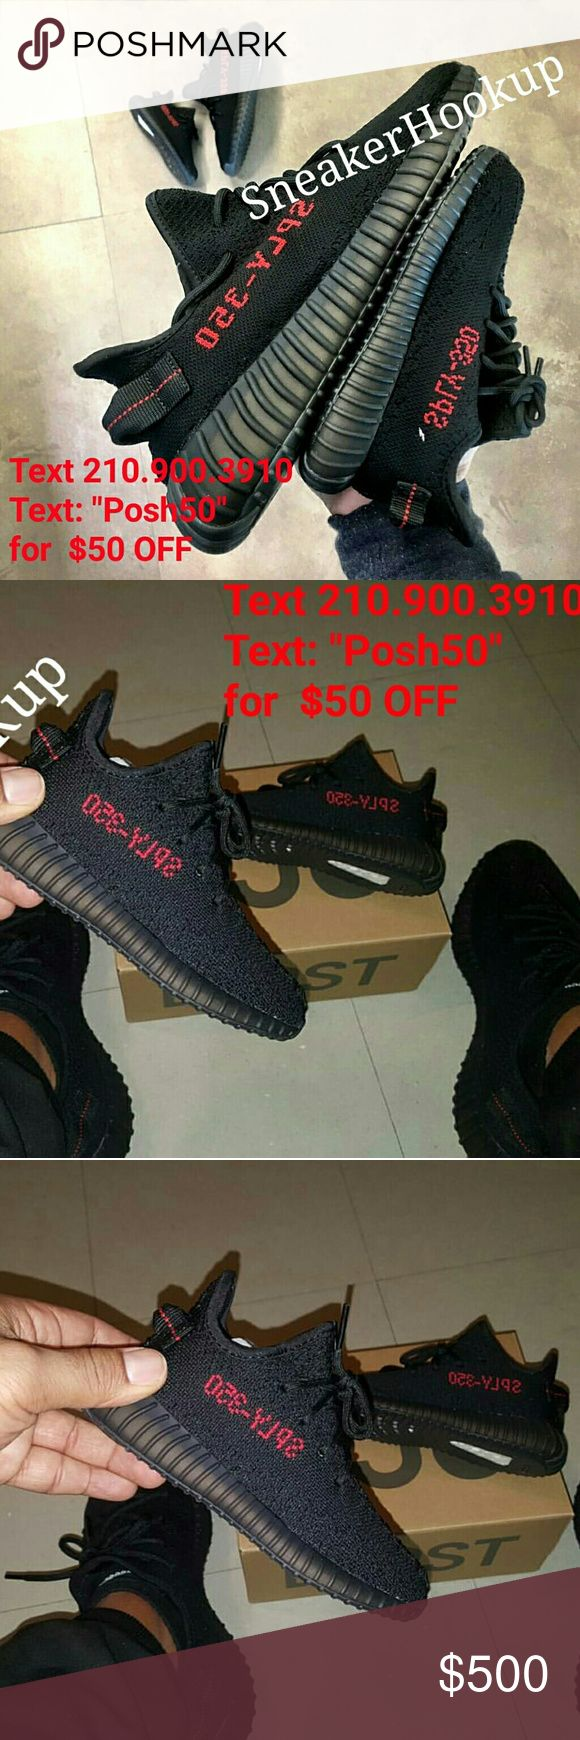 Adidas Yeezy Boost 350 Black /Red ALL SIZES All sizes - contact info in pictures + $50 off Adidas  Shoes Sneakers